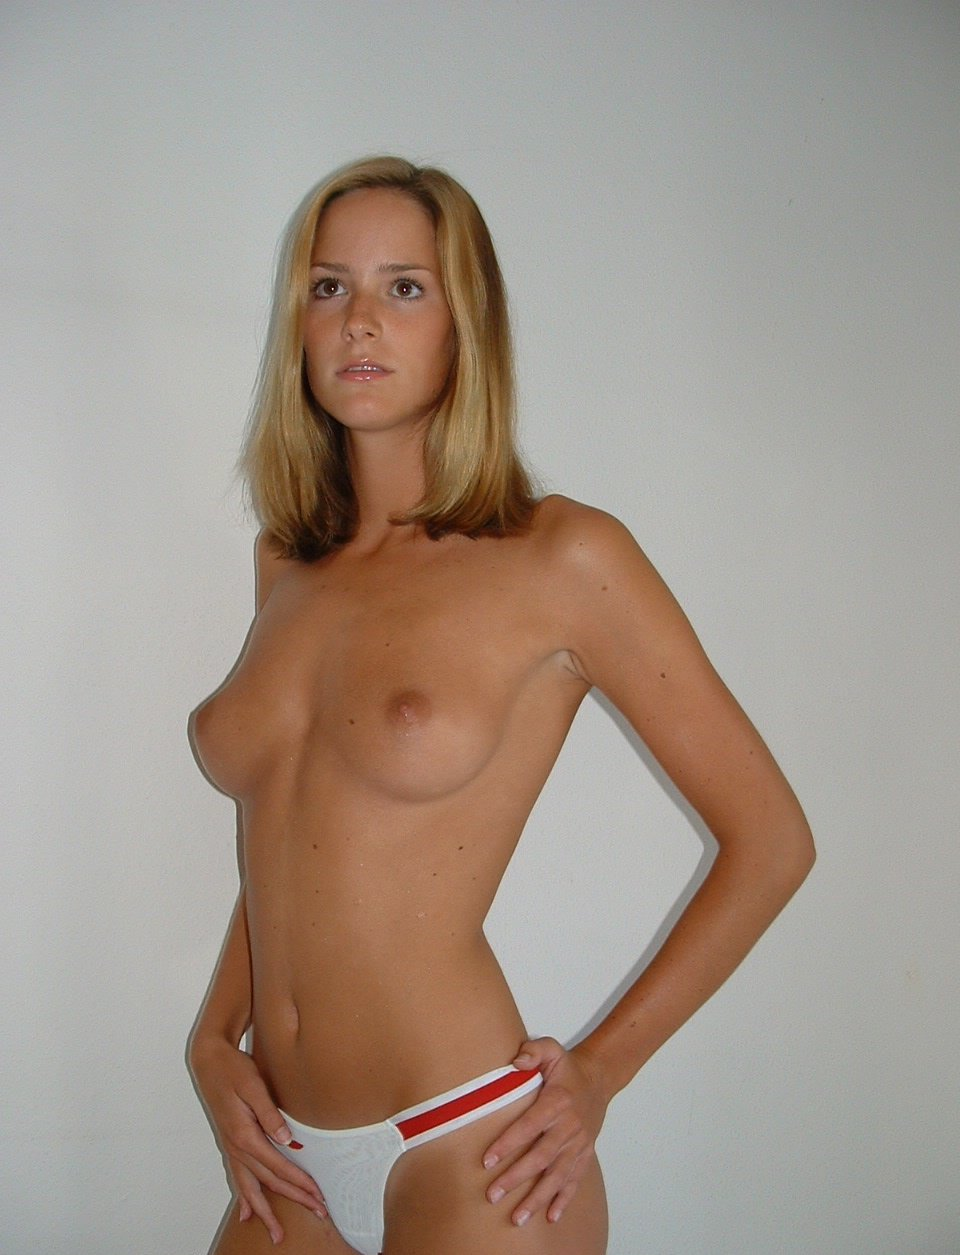 can help nothing. mom big boobs tits are not